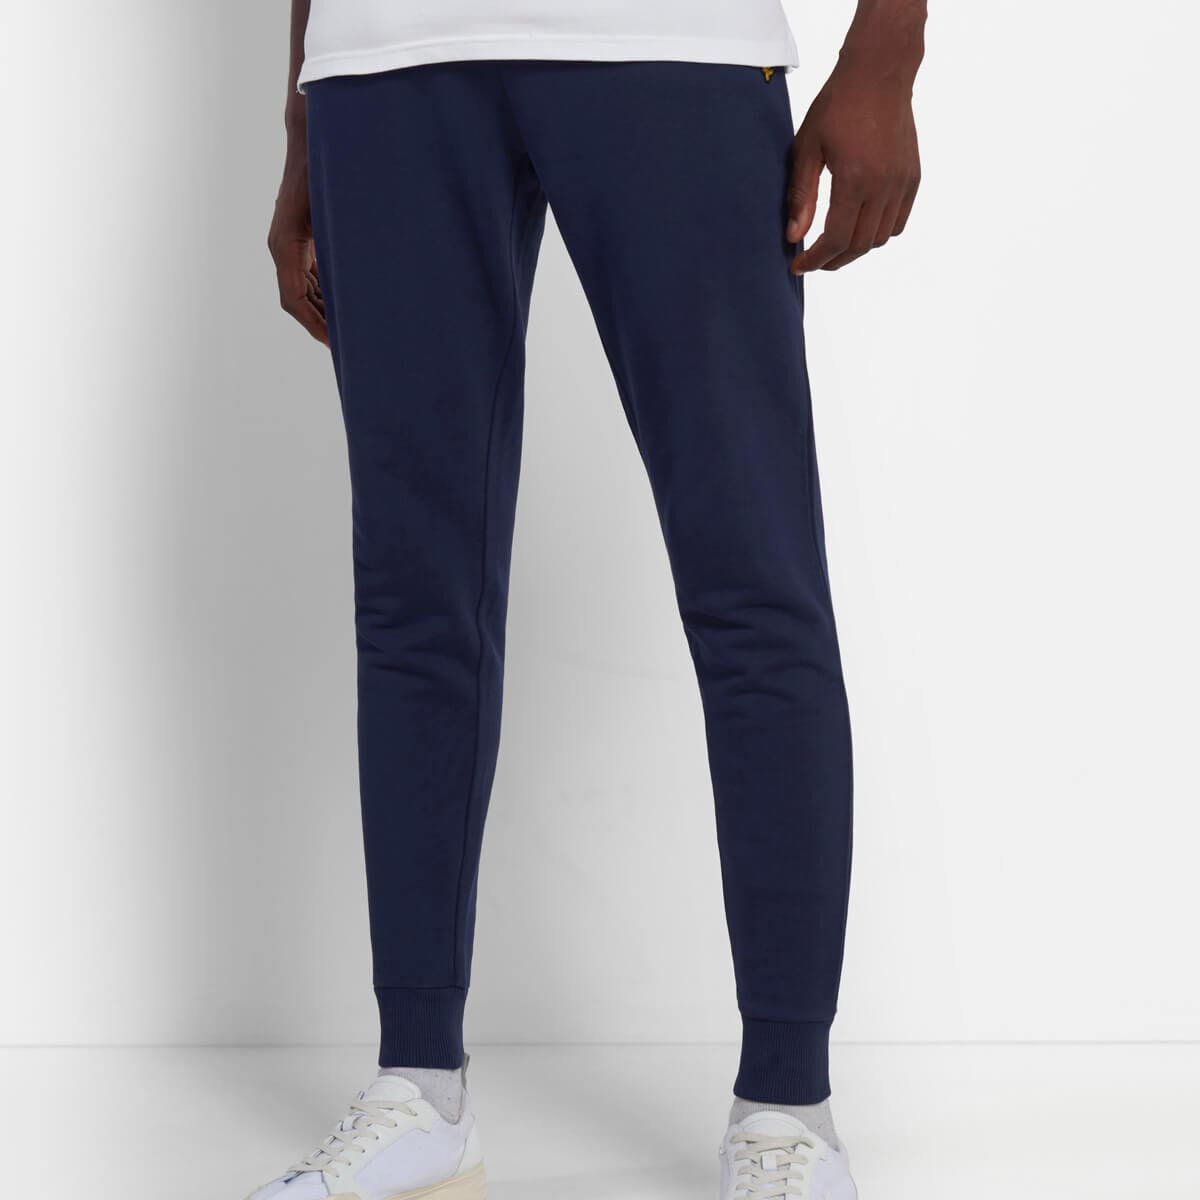 Lyle & Scot Skinny Sweatpant Joggers Navy